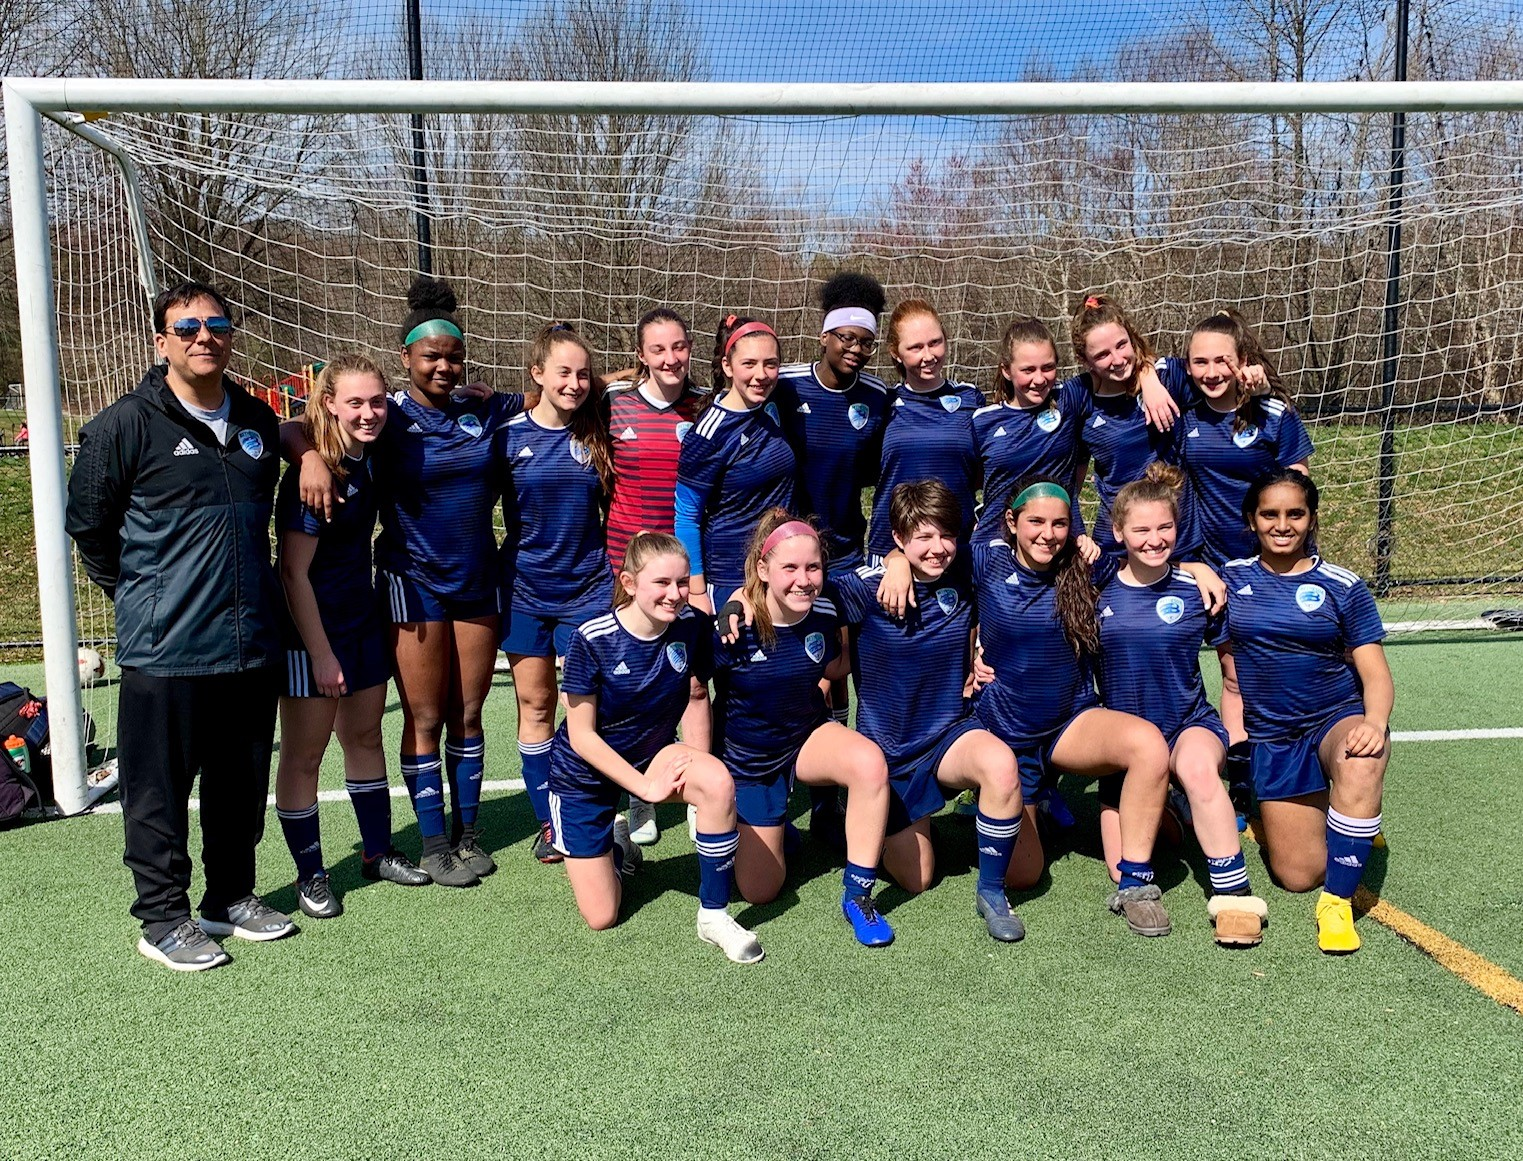 GU15 Rampage PWSI Icebreaker Tournament, White Flight First Place (Coach Hector Morales Jr)